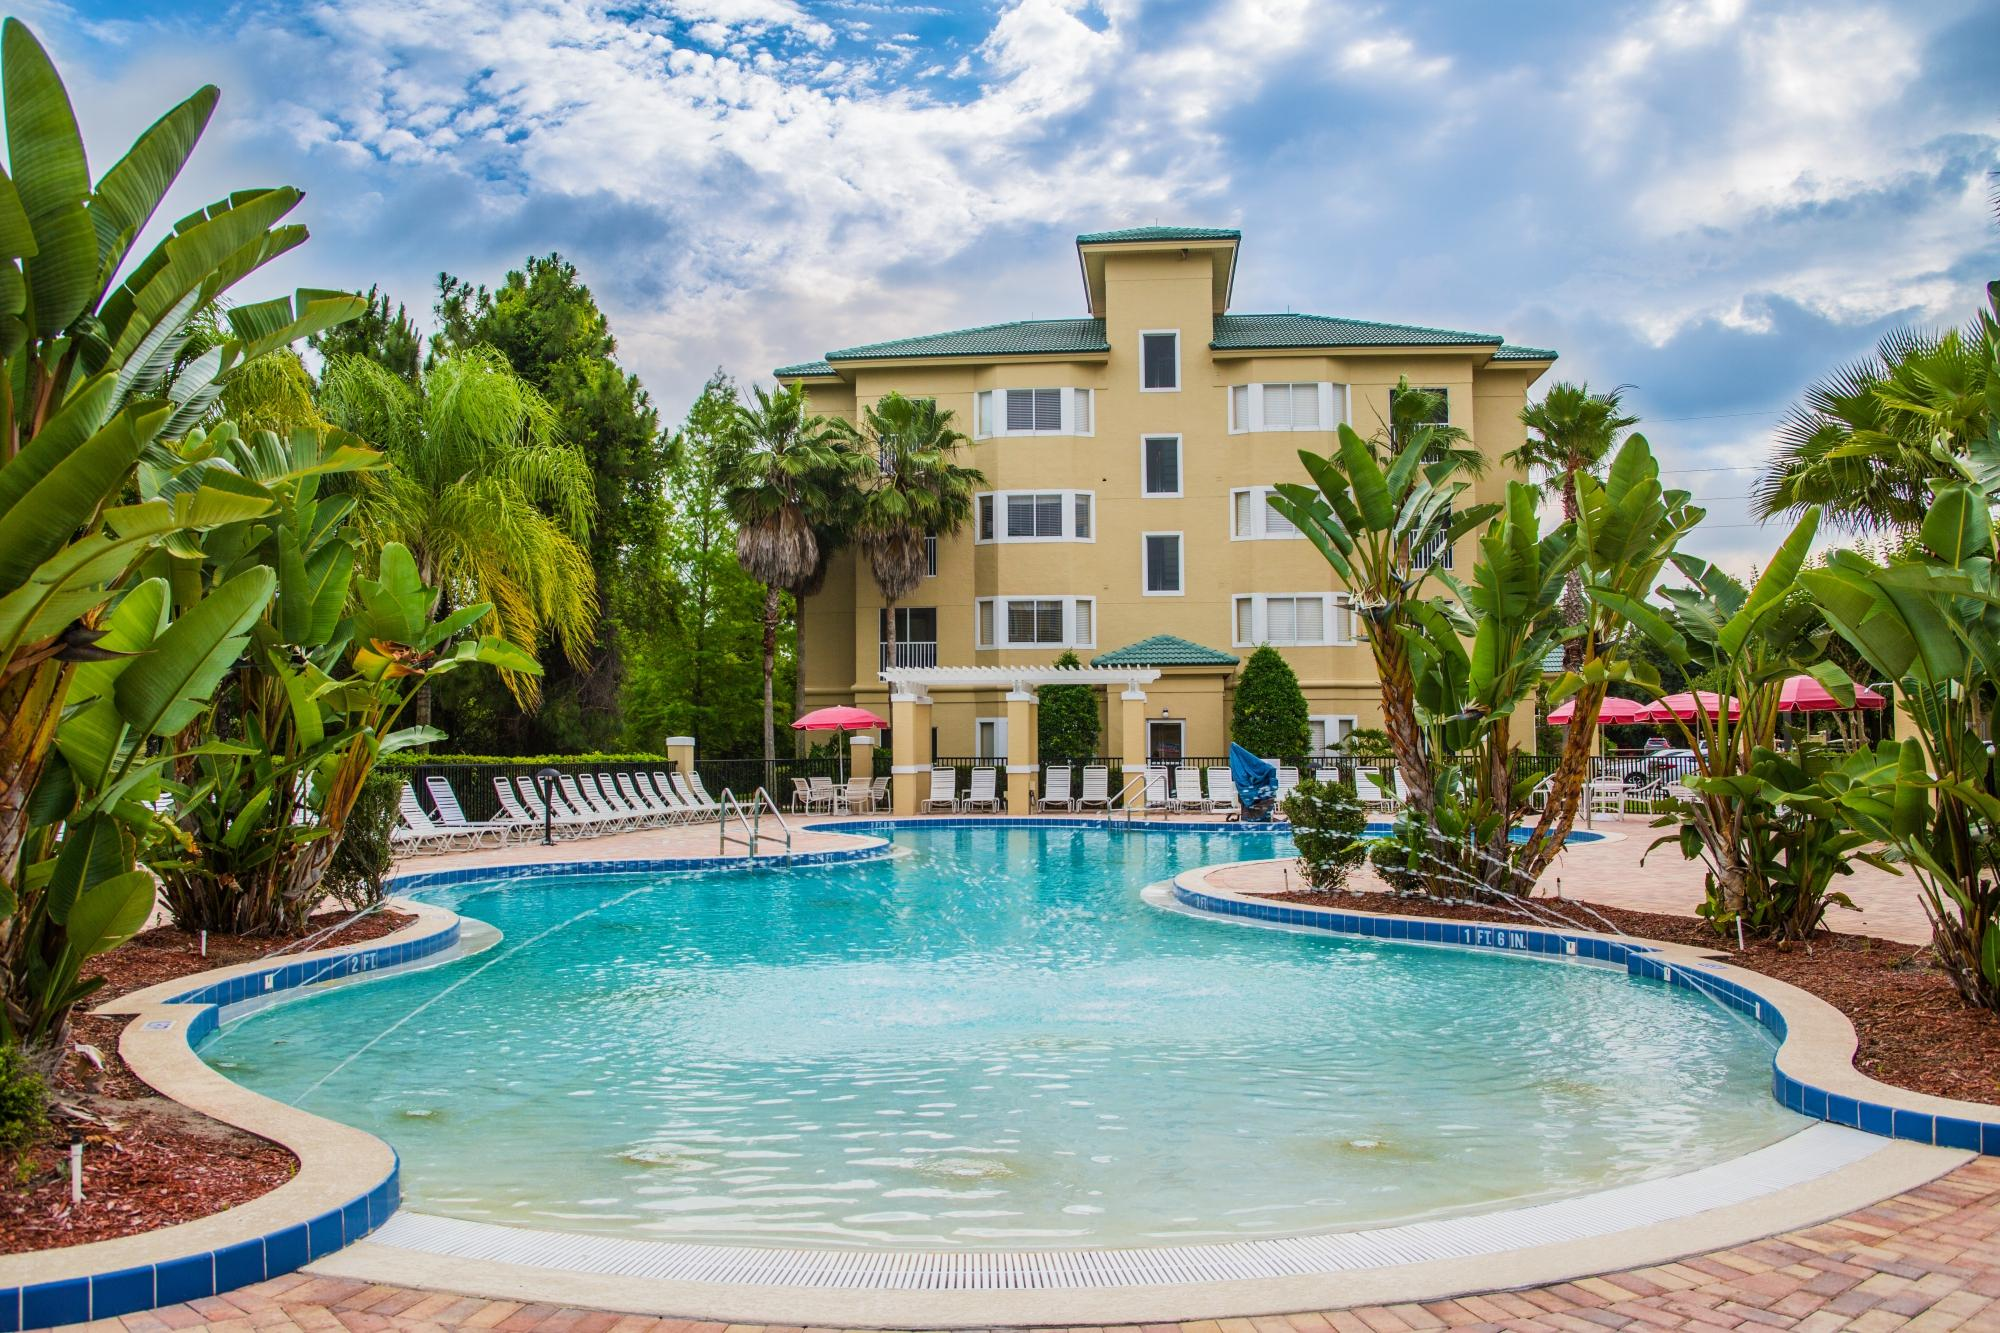 Silver Lake Resort Kissimmee Fl 2018 Review Family